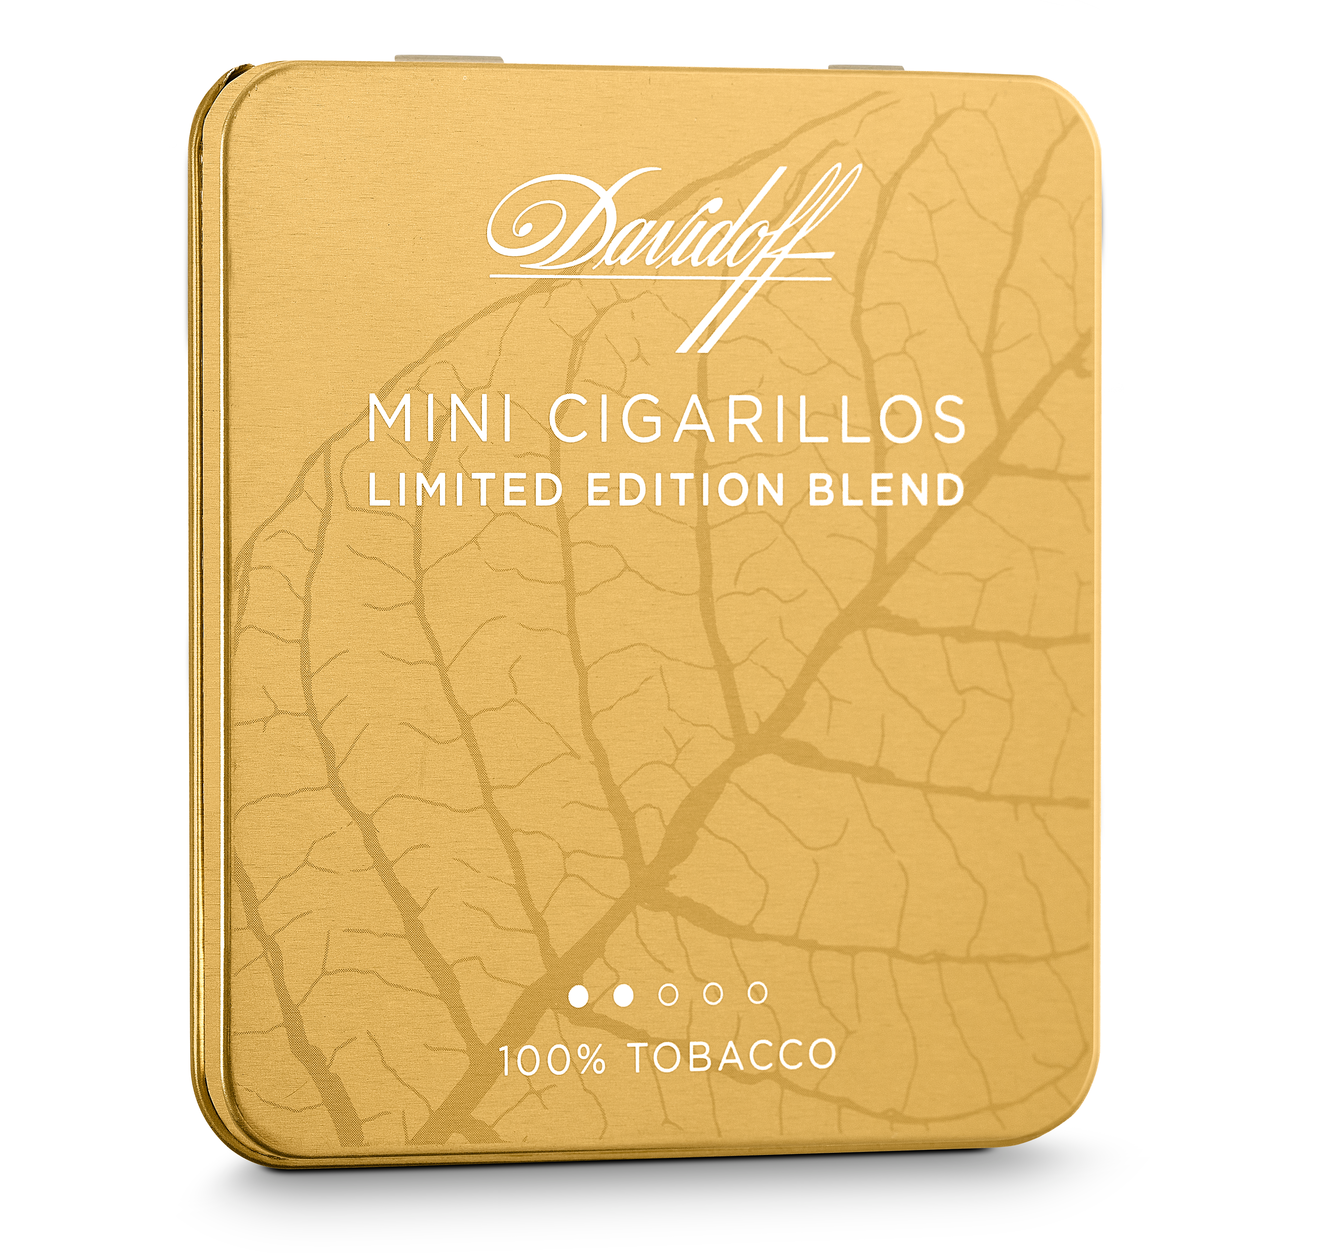 Cigar News: Davidoff Golden Leaf Mini Cigarillos Limited Edition Launched